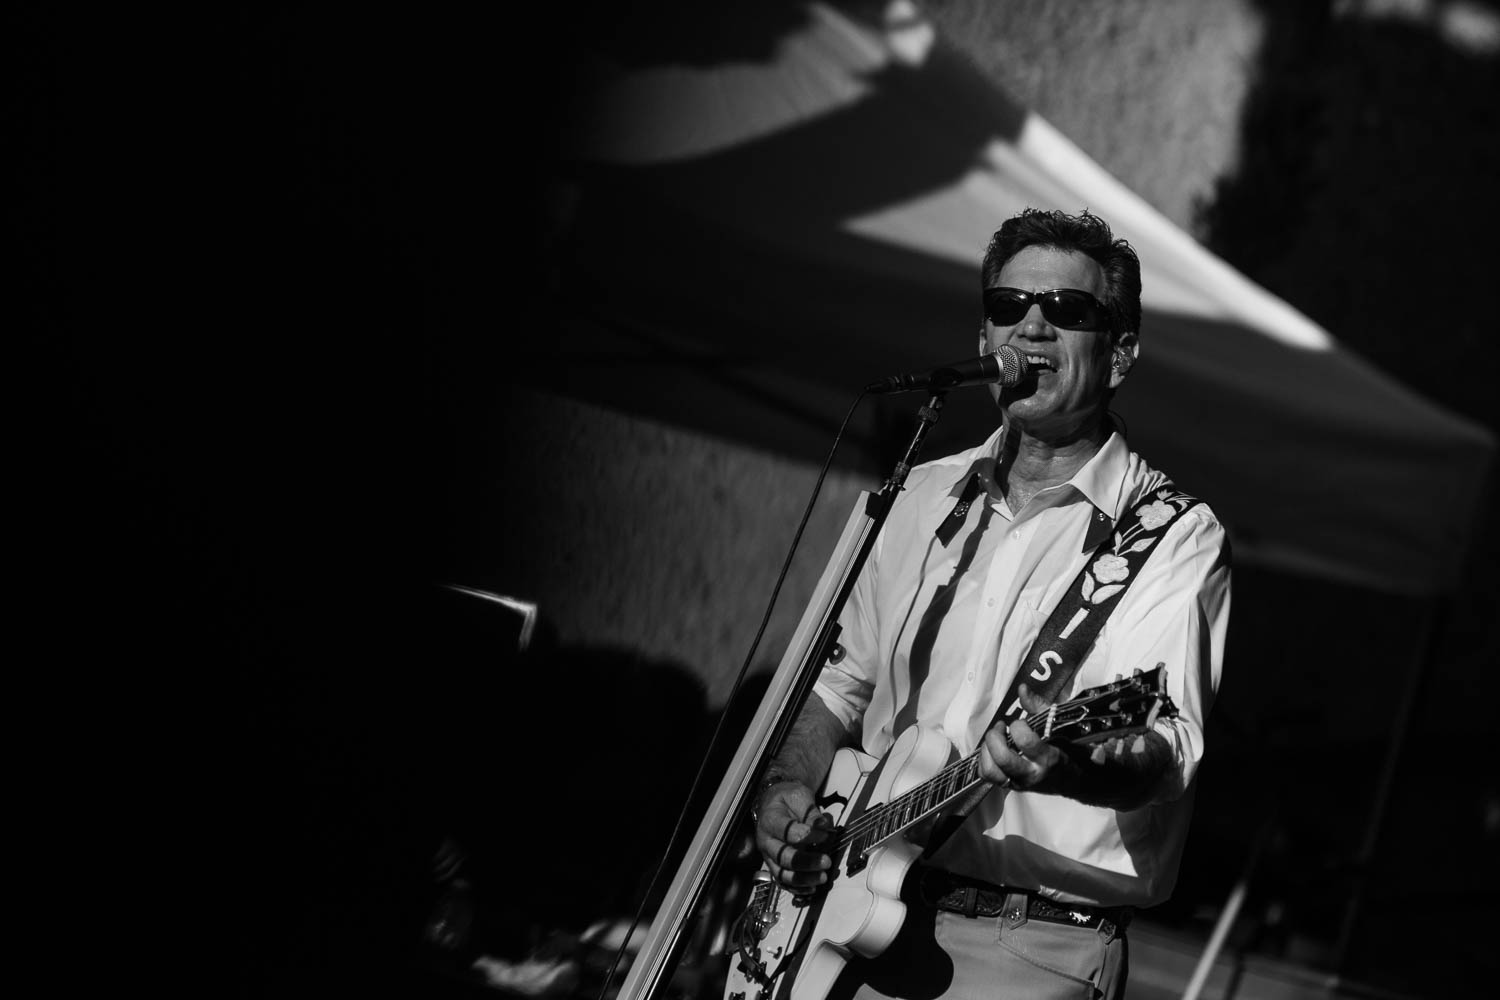 Rodney Strong Concerts 2014 2 Chris Isaak-3615.jpg